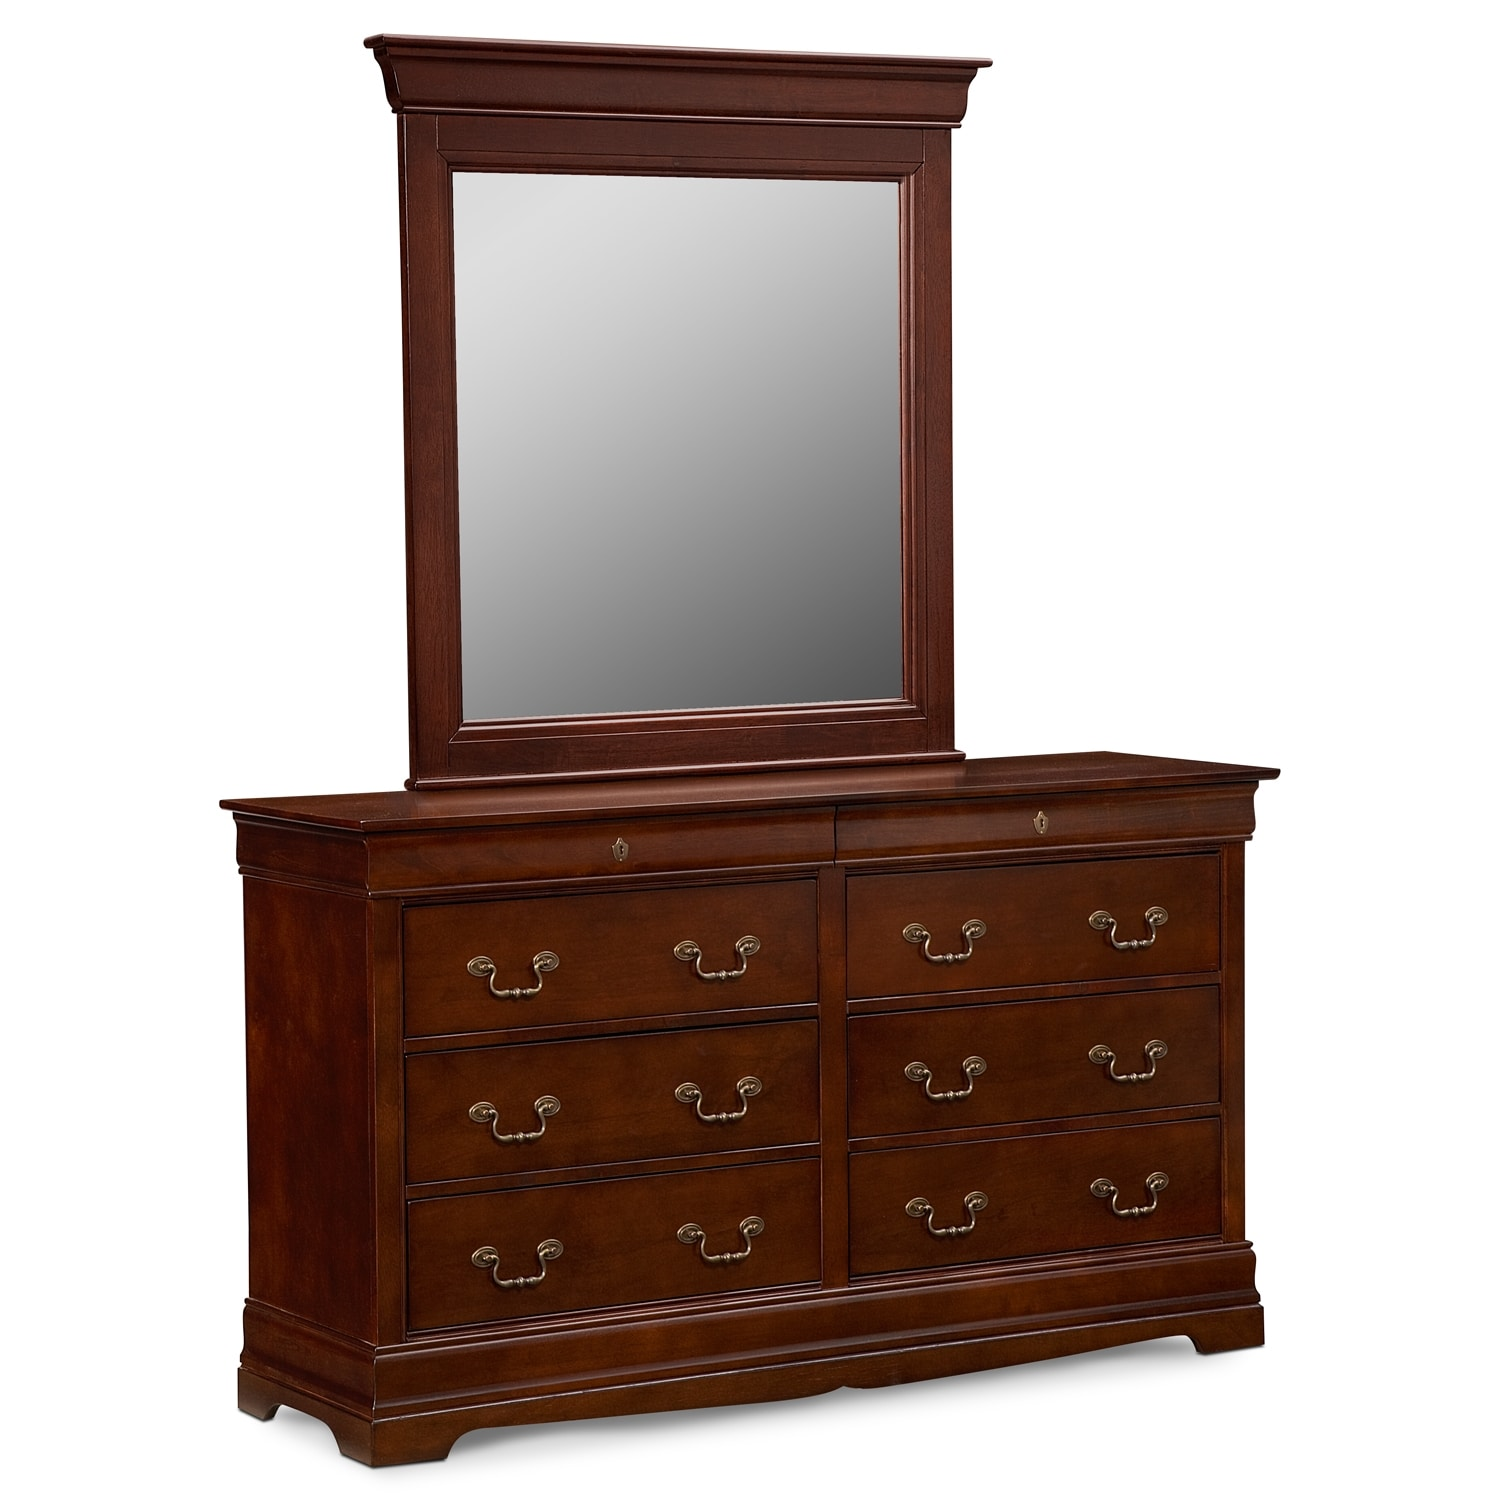 Neo classic cherry dresser mirror value city furniture for Bedroom dressers